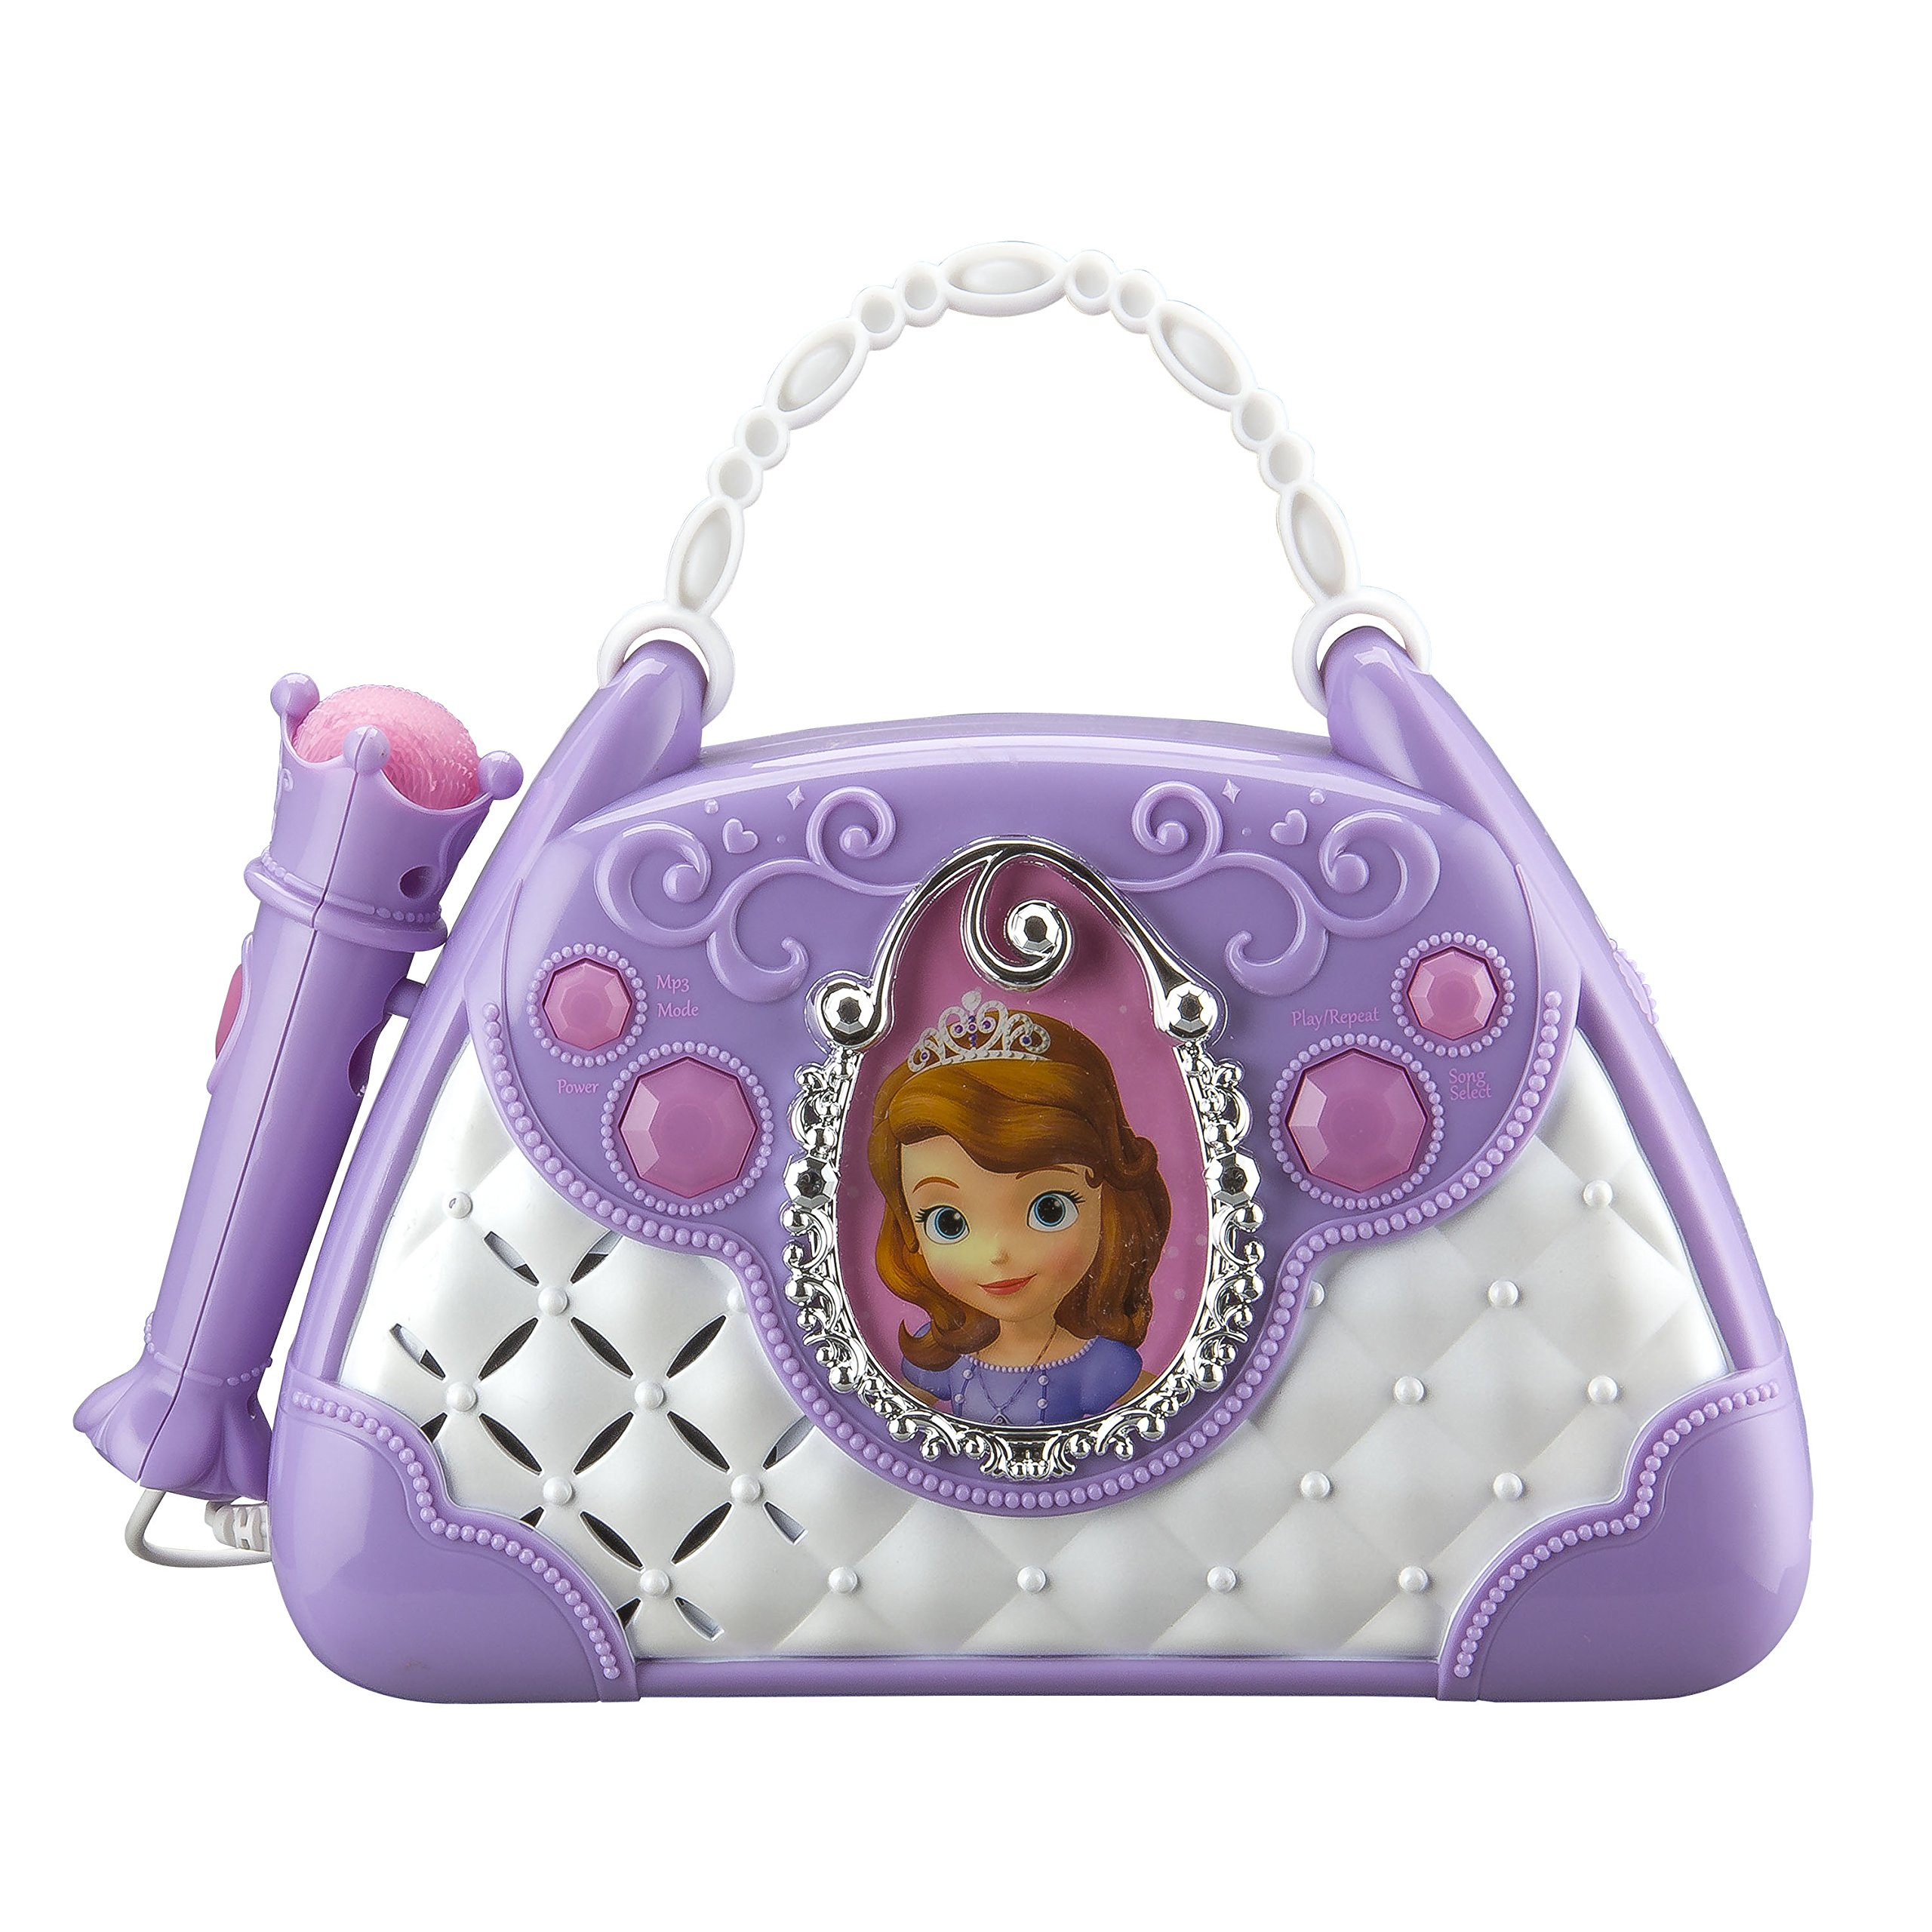 Disney Sofia The First Junior Time To Shine Sing Along Boombox With Microphone Connect Your MP3 Player & Sing to Your Music or Sofia's Built In Tunes